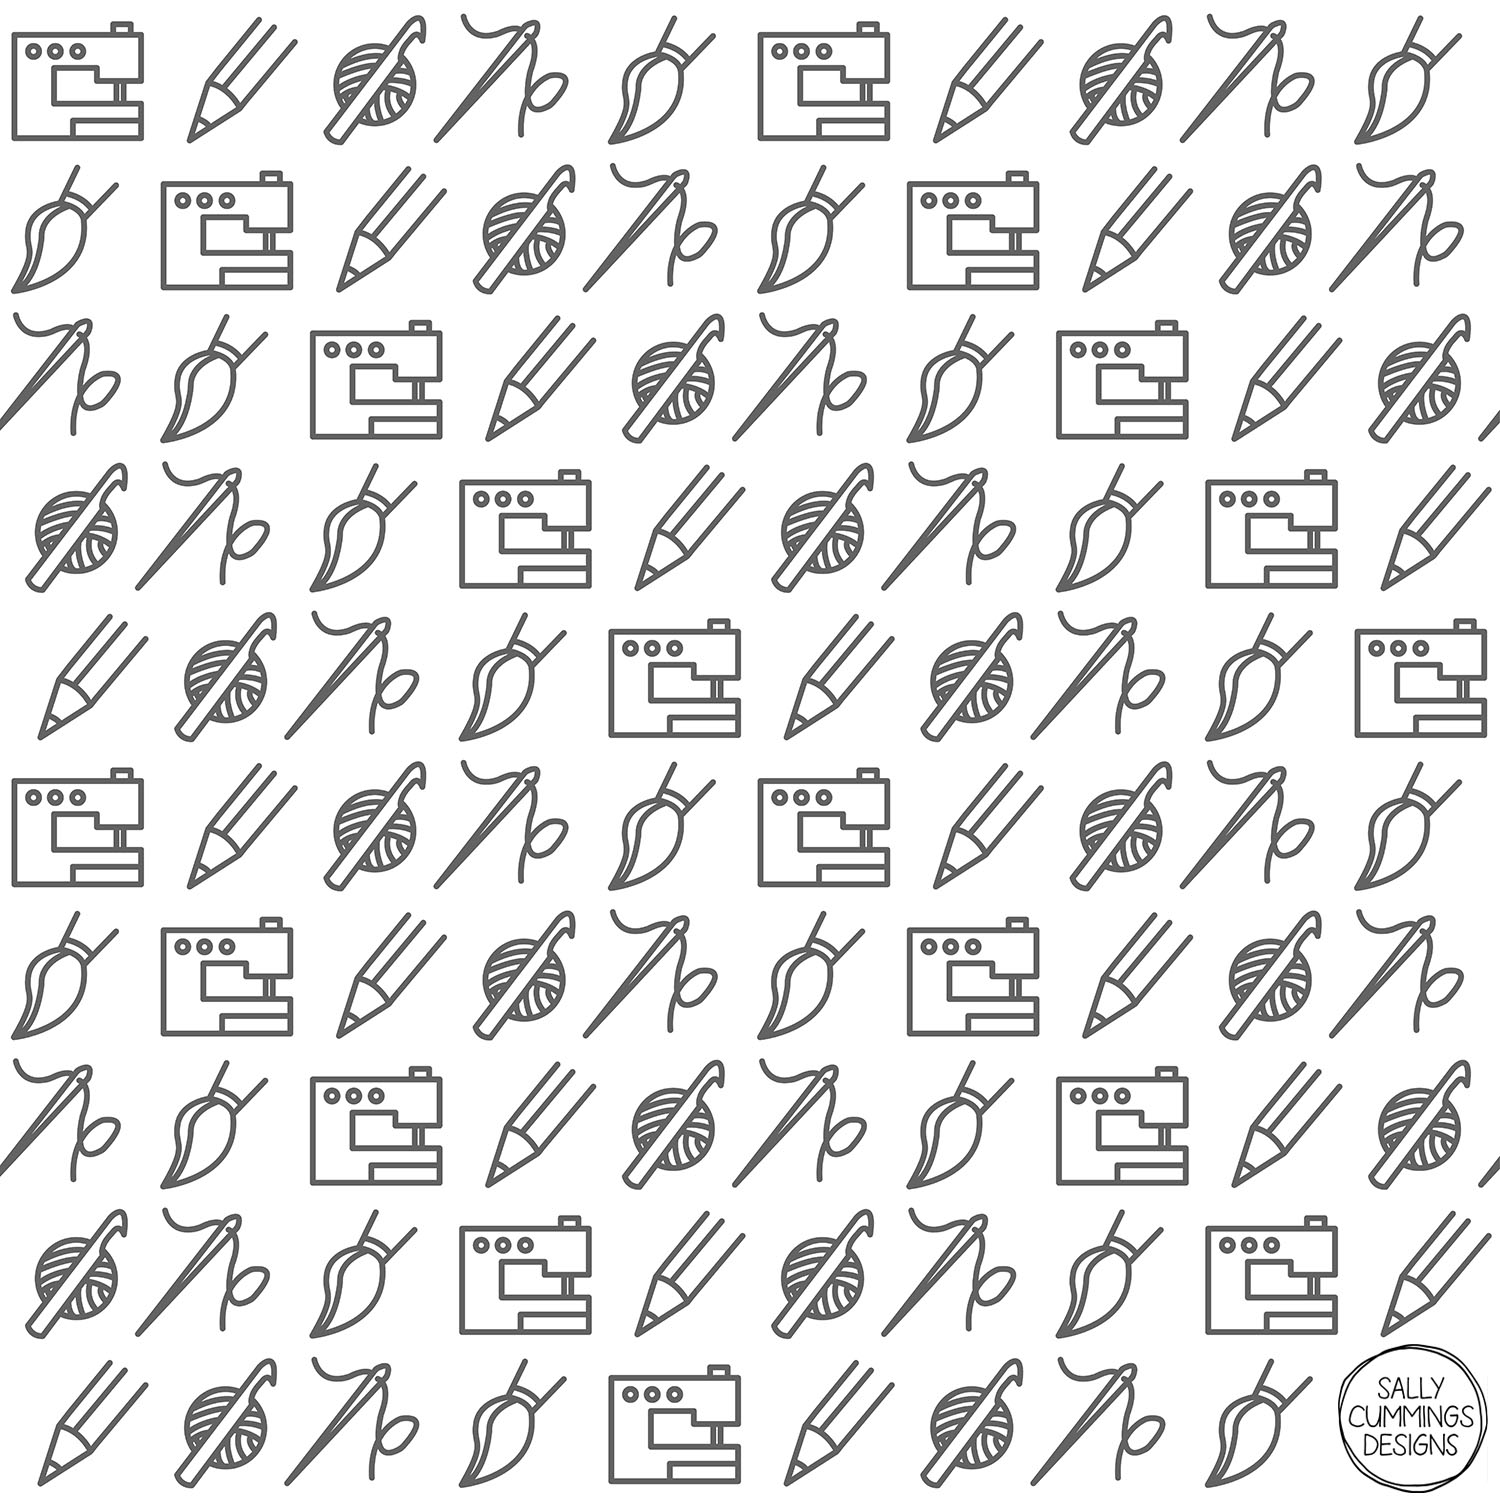 Sally Cummings Designs - Crafty Icons Pattern (Grey)